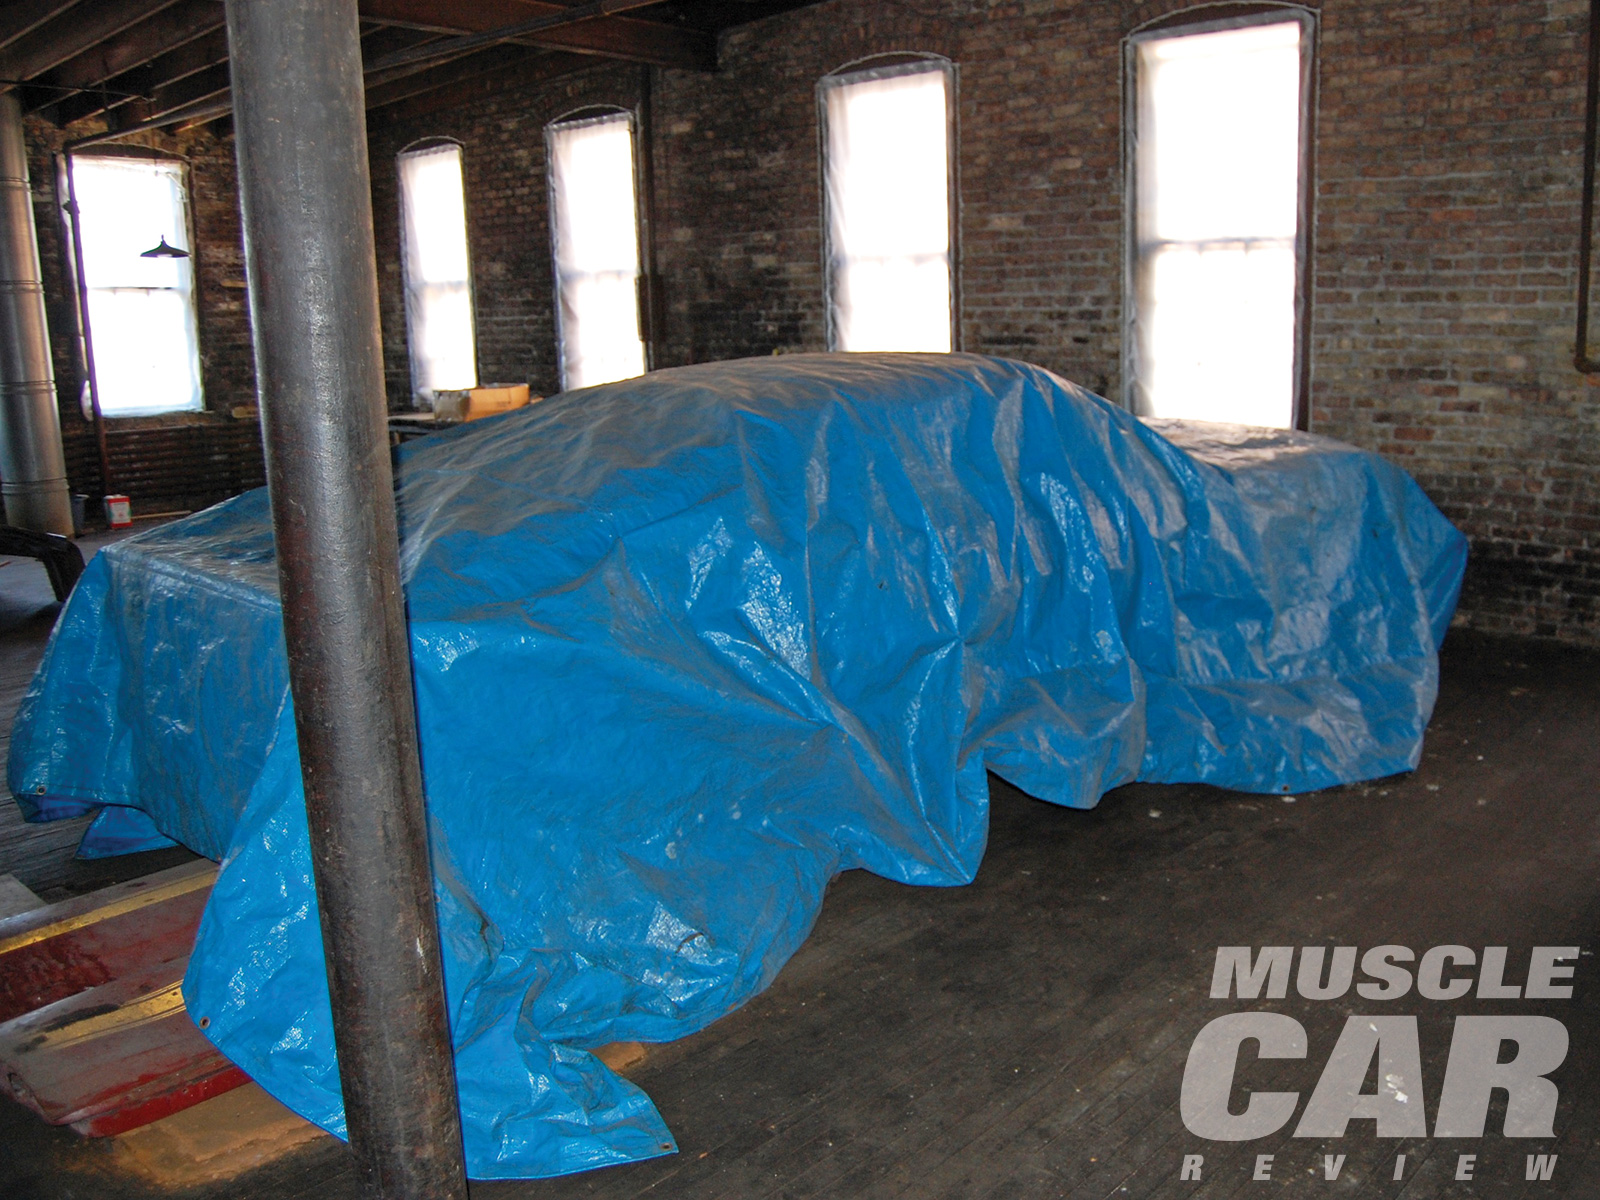 Mark Barton's Rare Find was covered with a tarp sitting on a wooden floor in a heated room above an attorney's office.